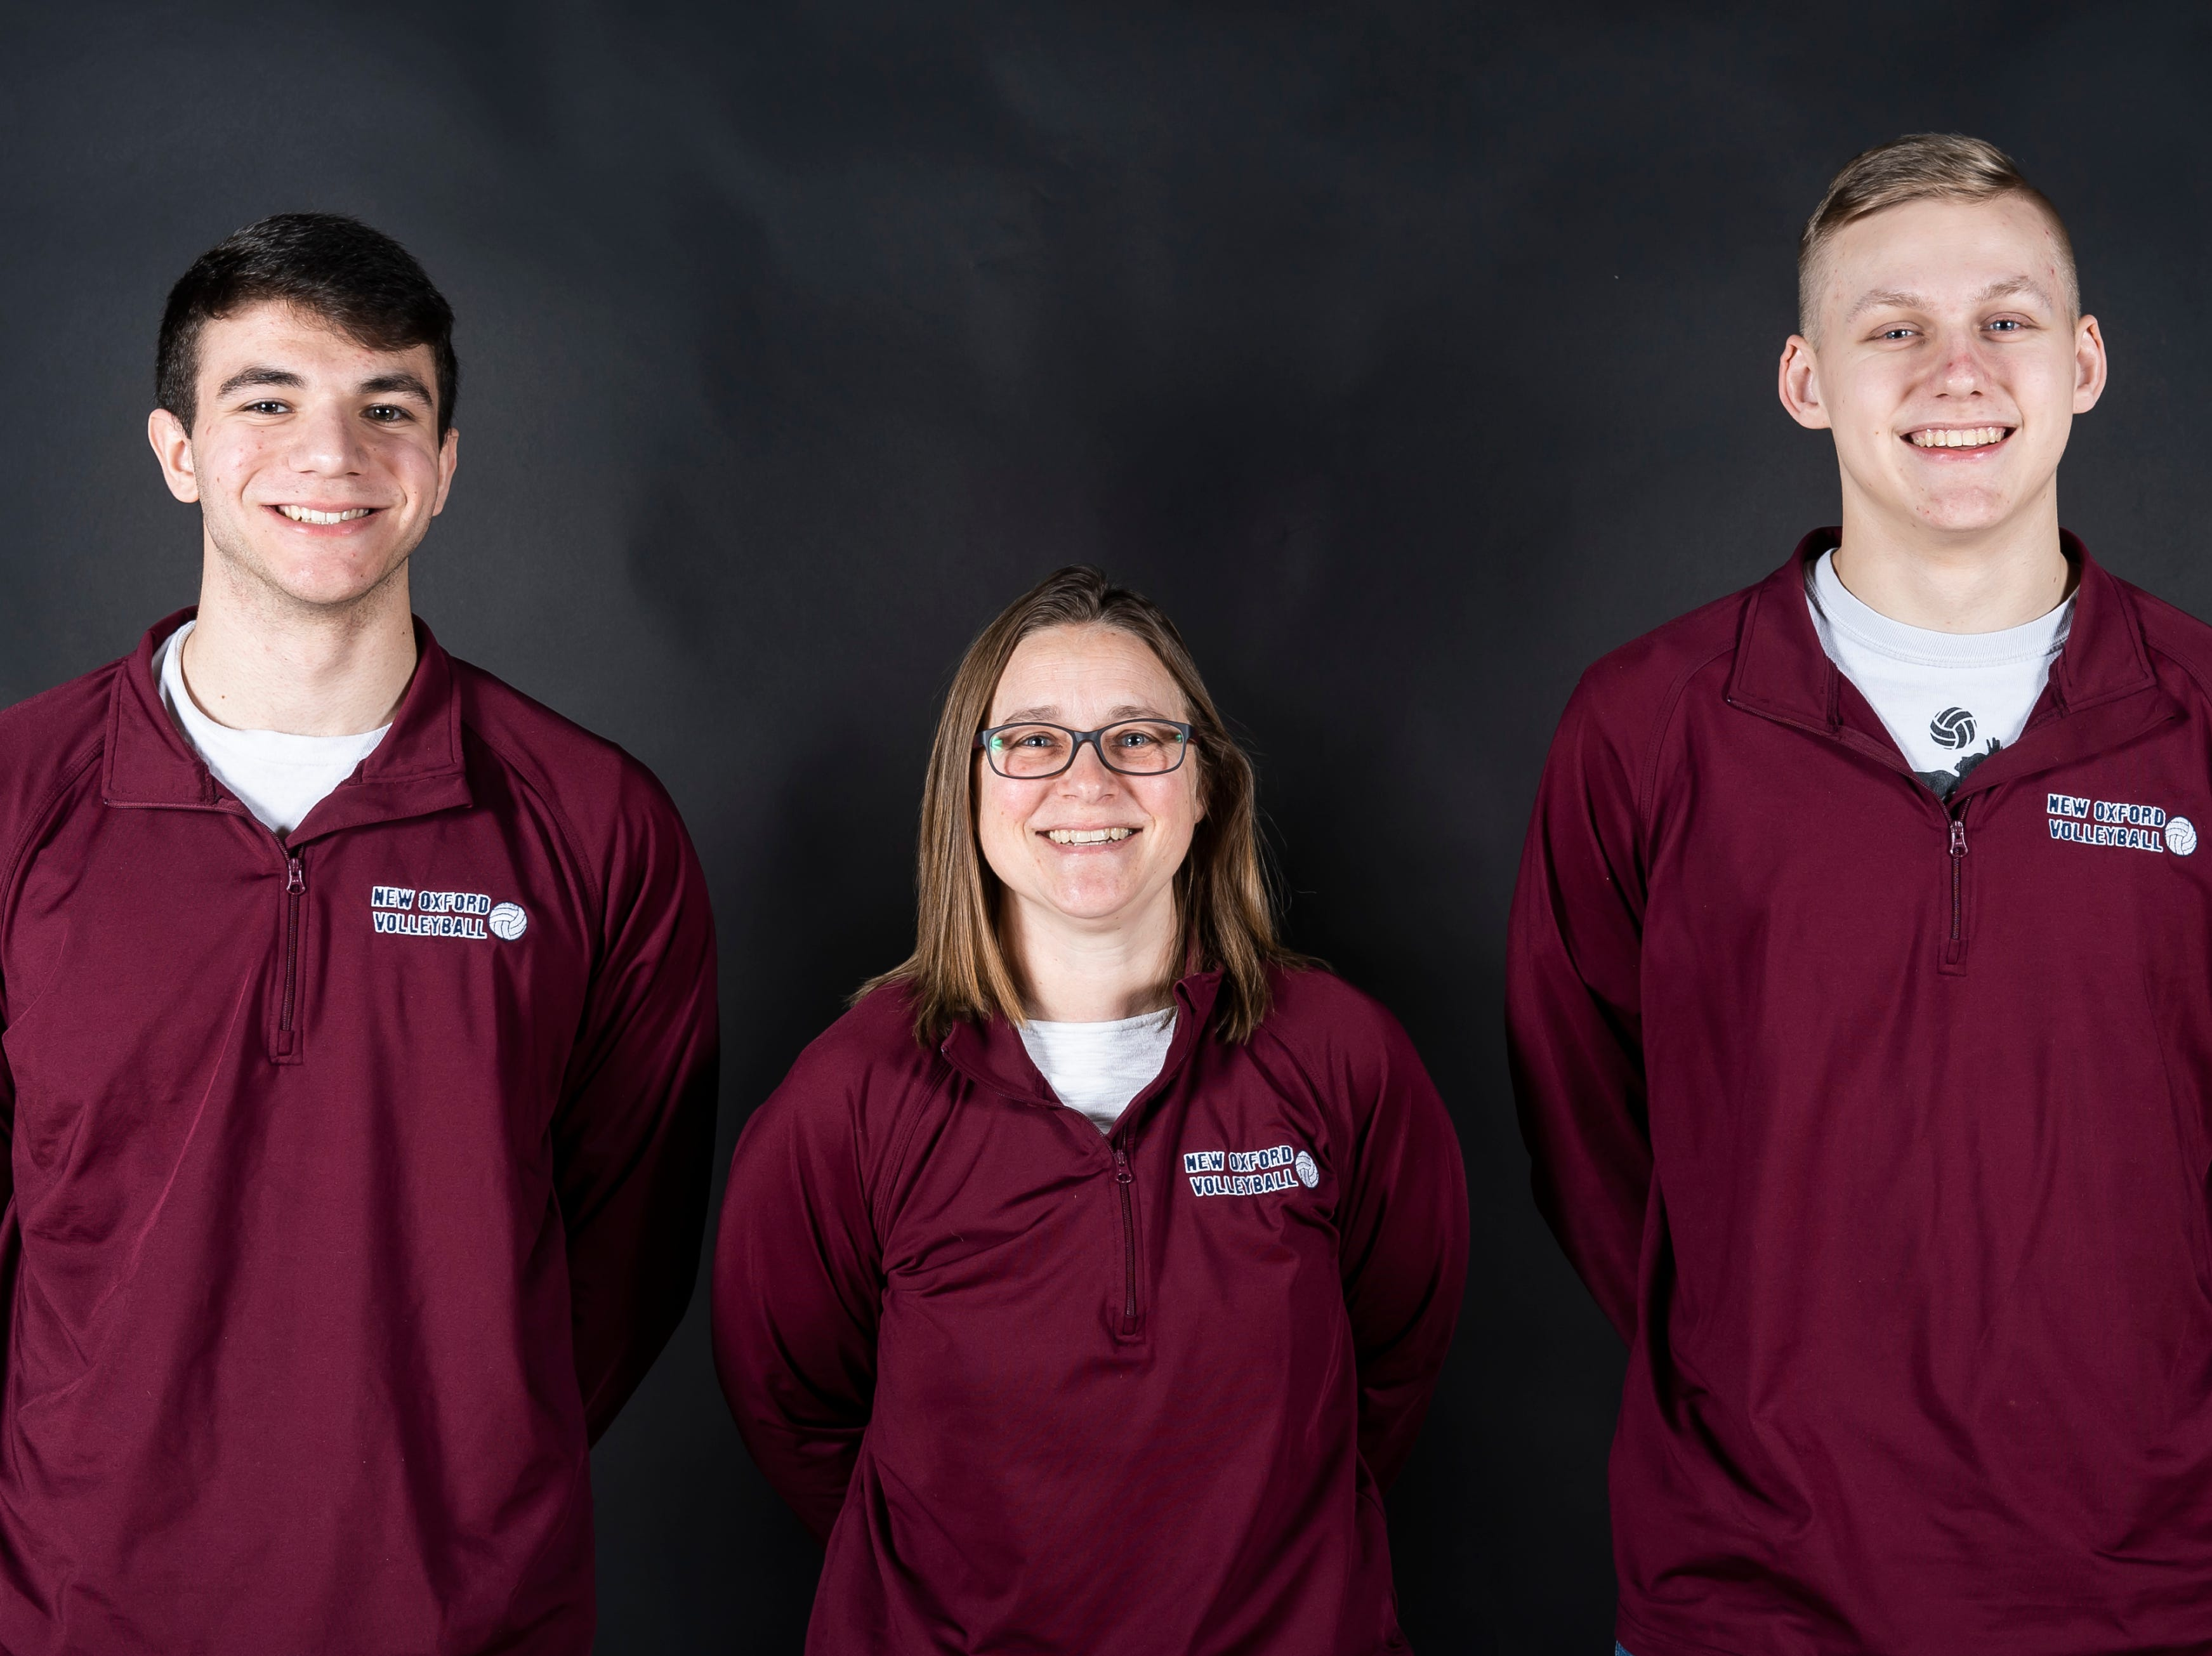 (From left) New Oxford volleyball's Matthew Faust, coach Rachel Booth and Joe Angleberger pose in the GameTimePA photo booth during spring sports media day in York Sunday, March 10, 2019.